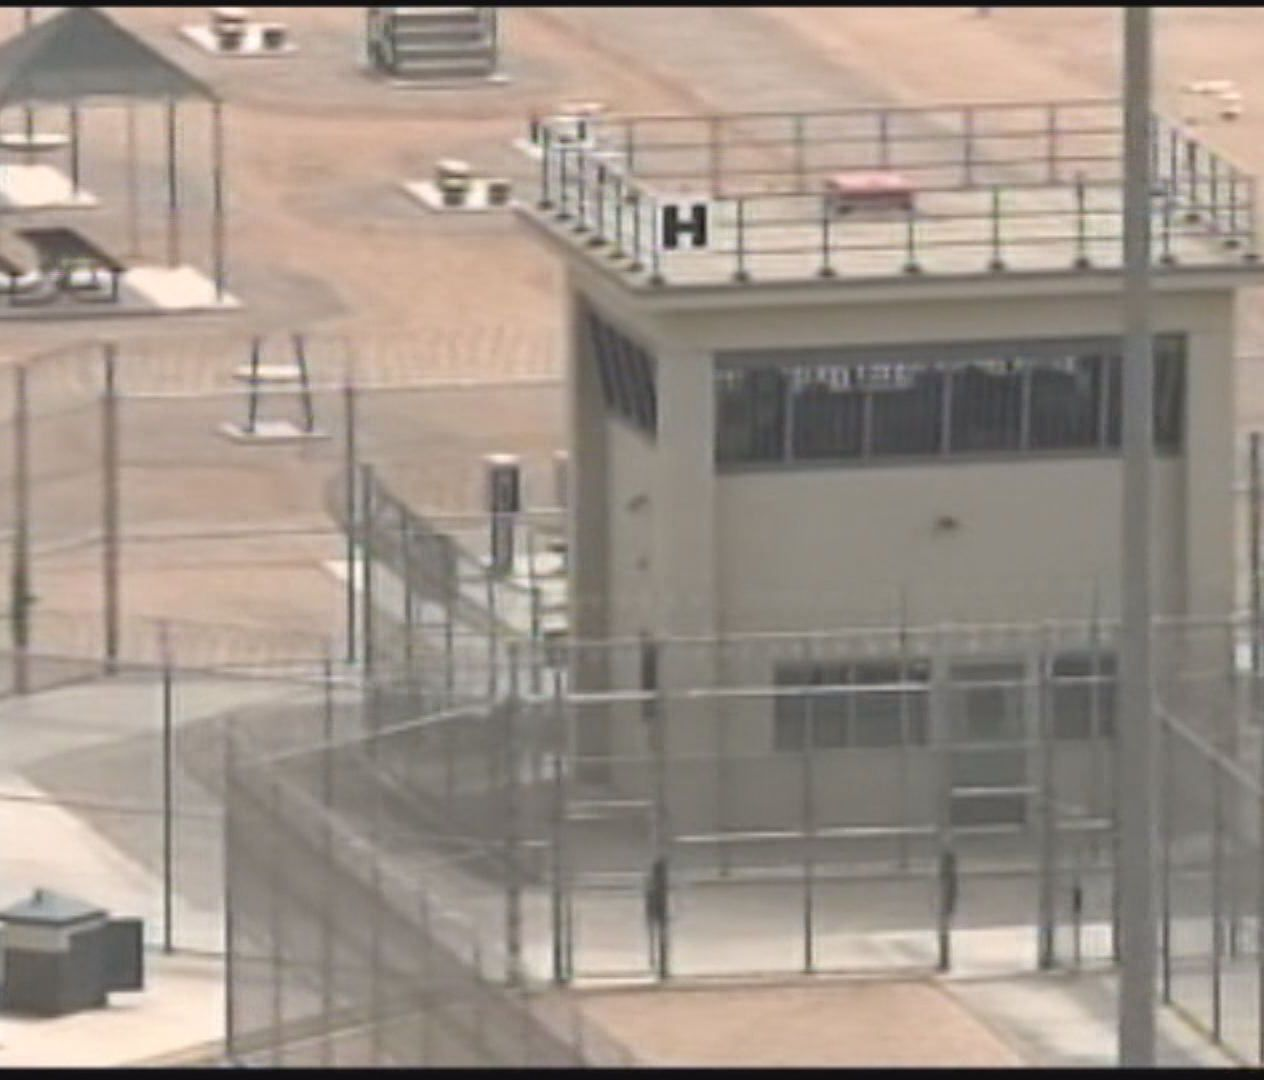 After Riot, Arizona Prison Moves 700 Inmates